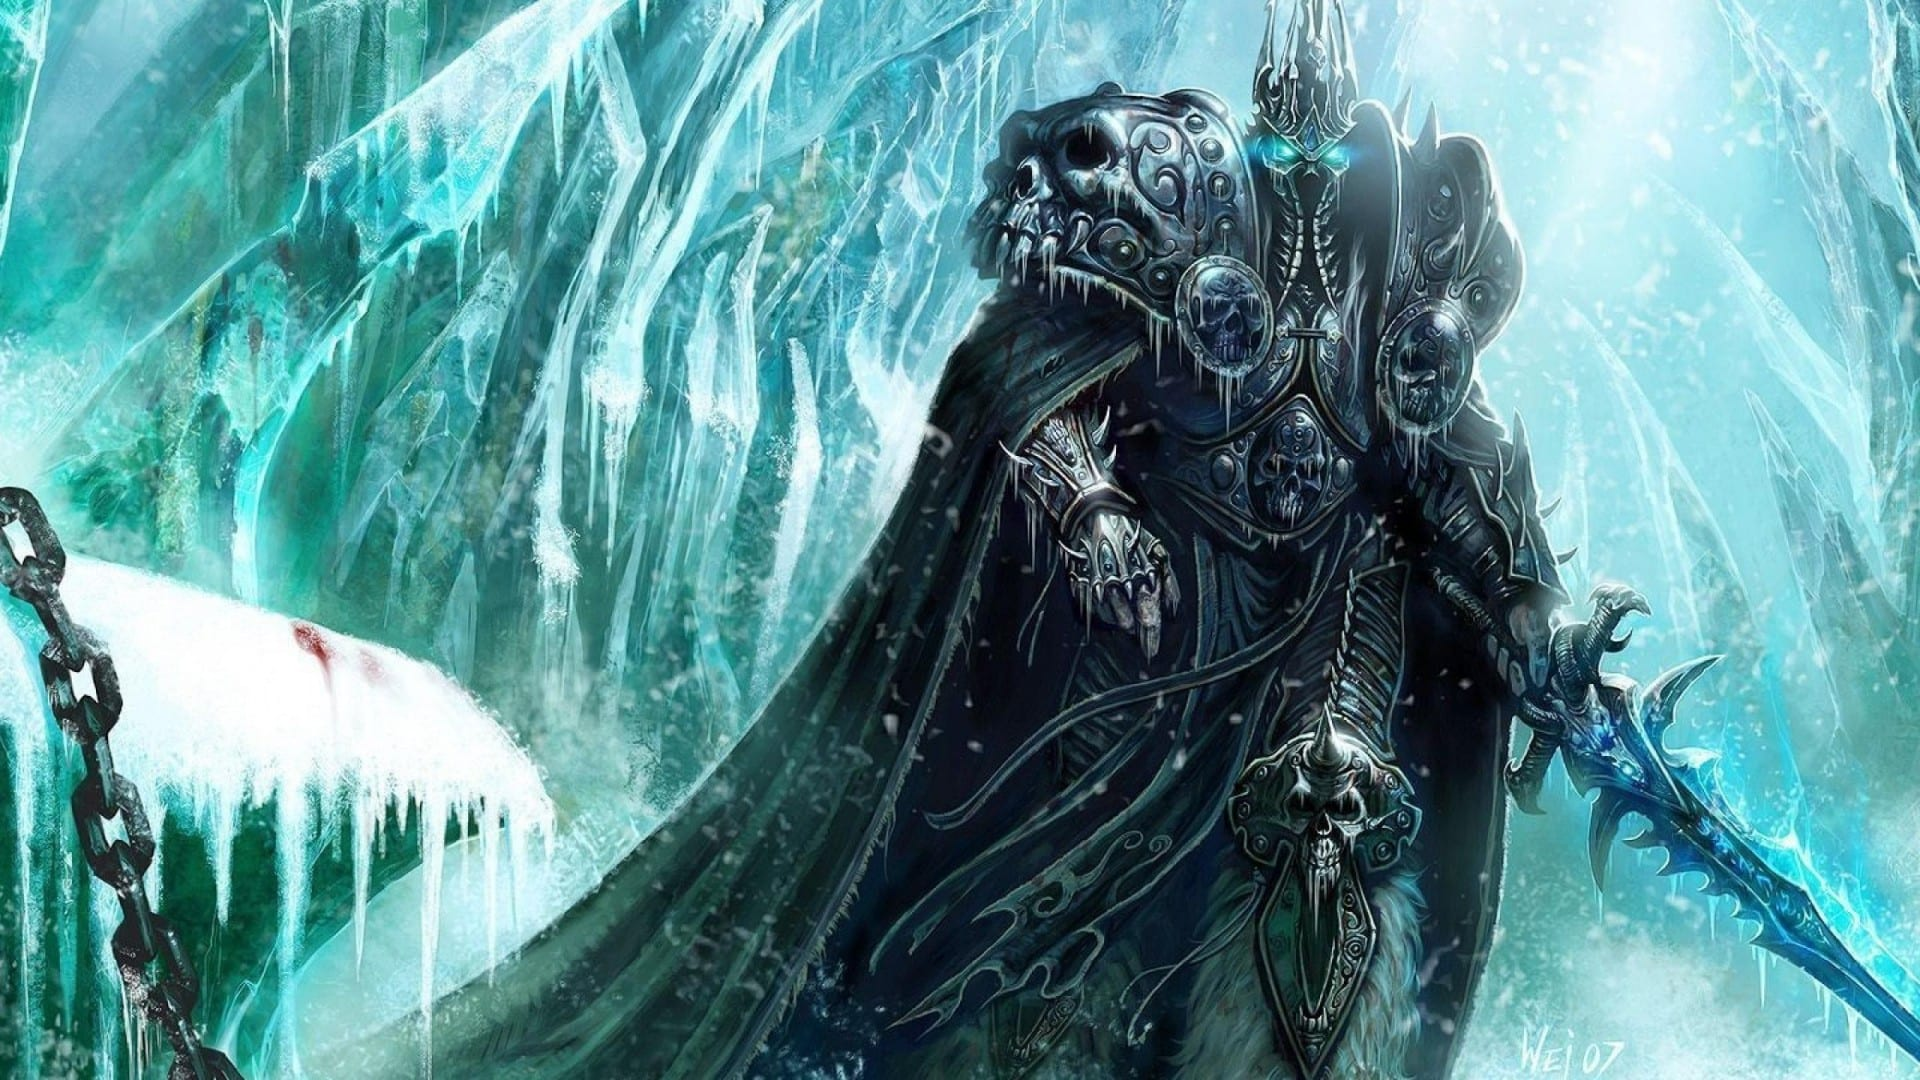 war_world_of_warcraft_wrath_lich_king_1920x1080_7129